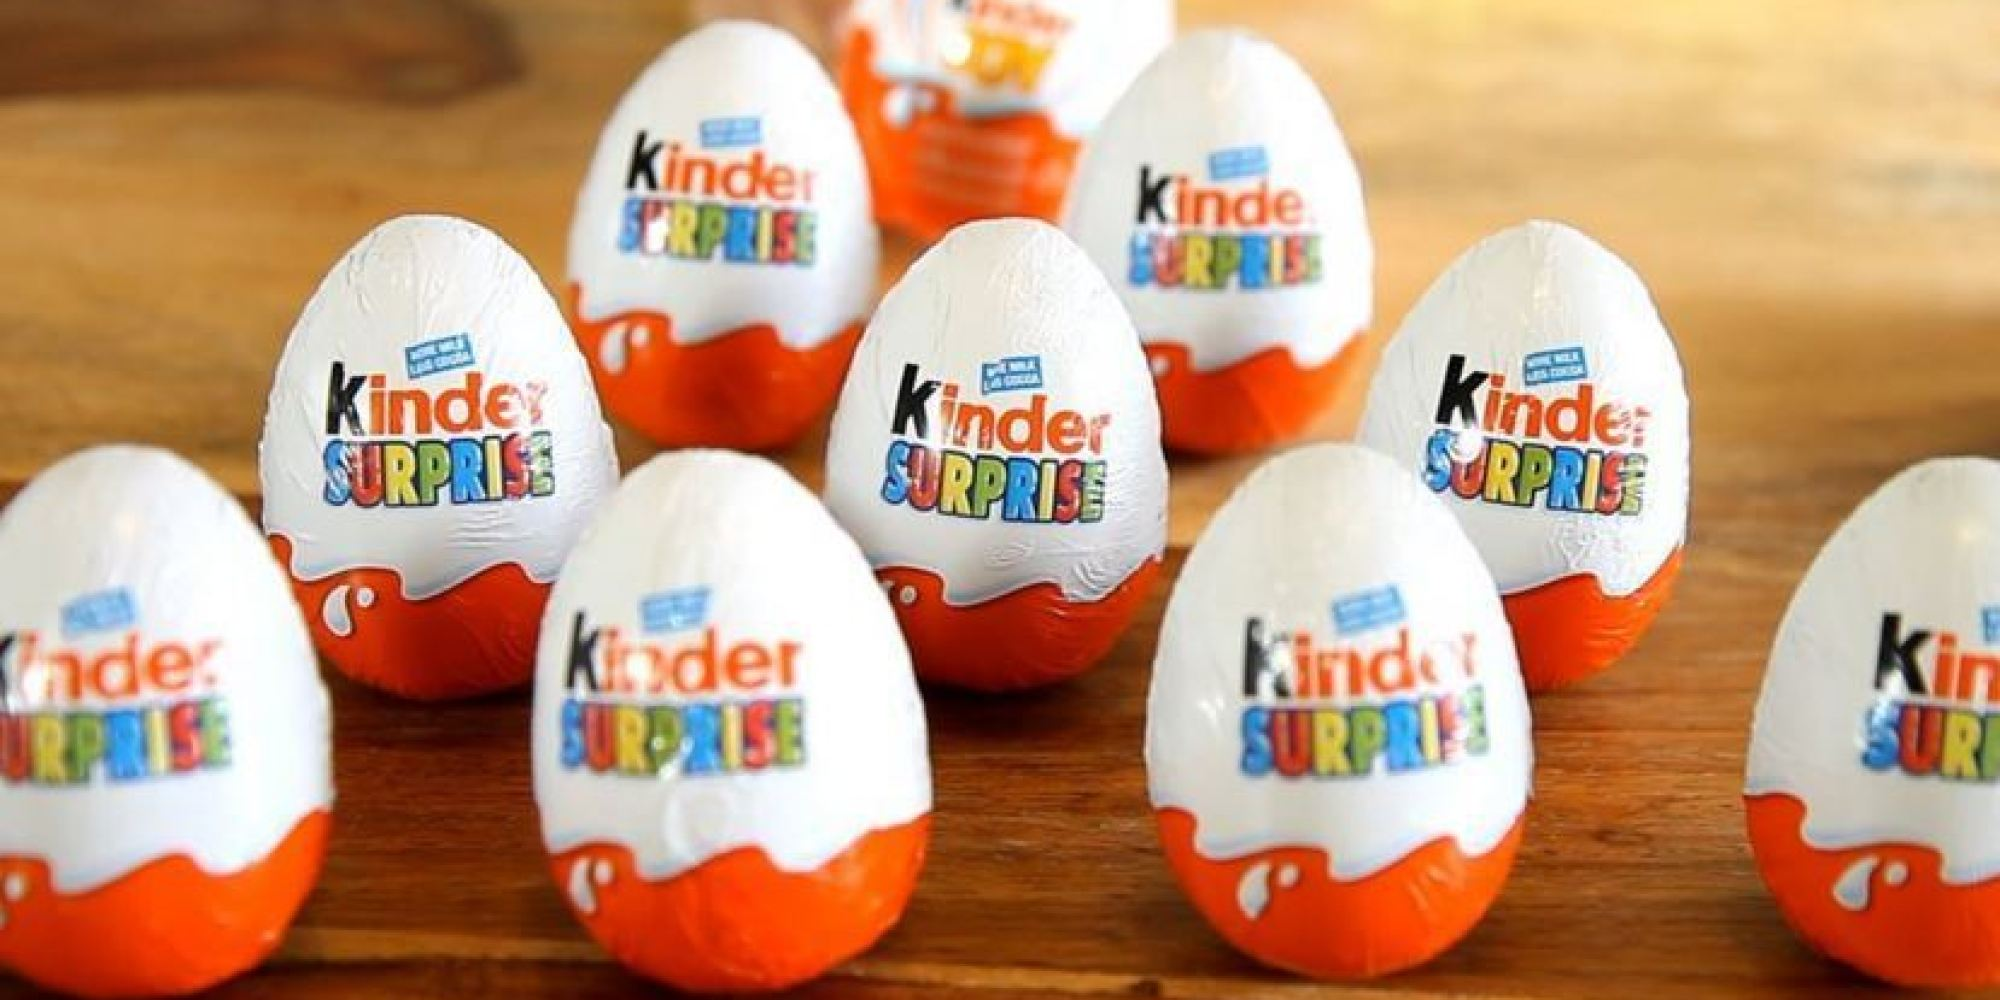 Kinder Surprise USA: Why These Eggs Are Banned South Of The Border